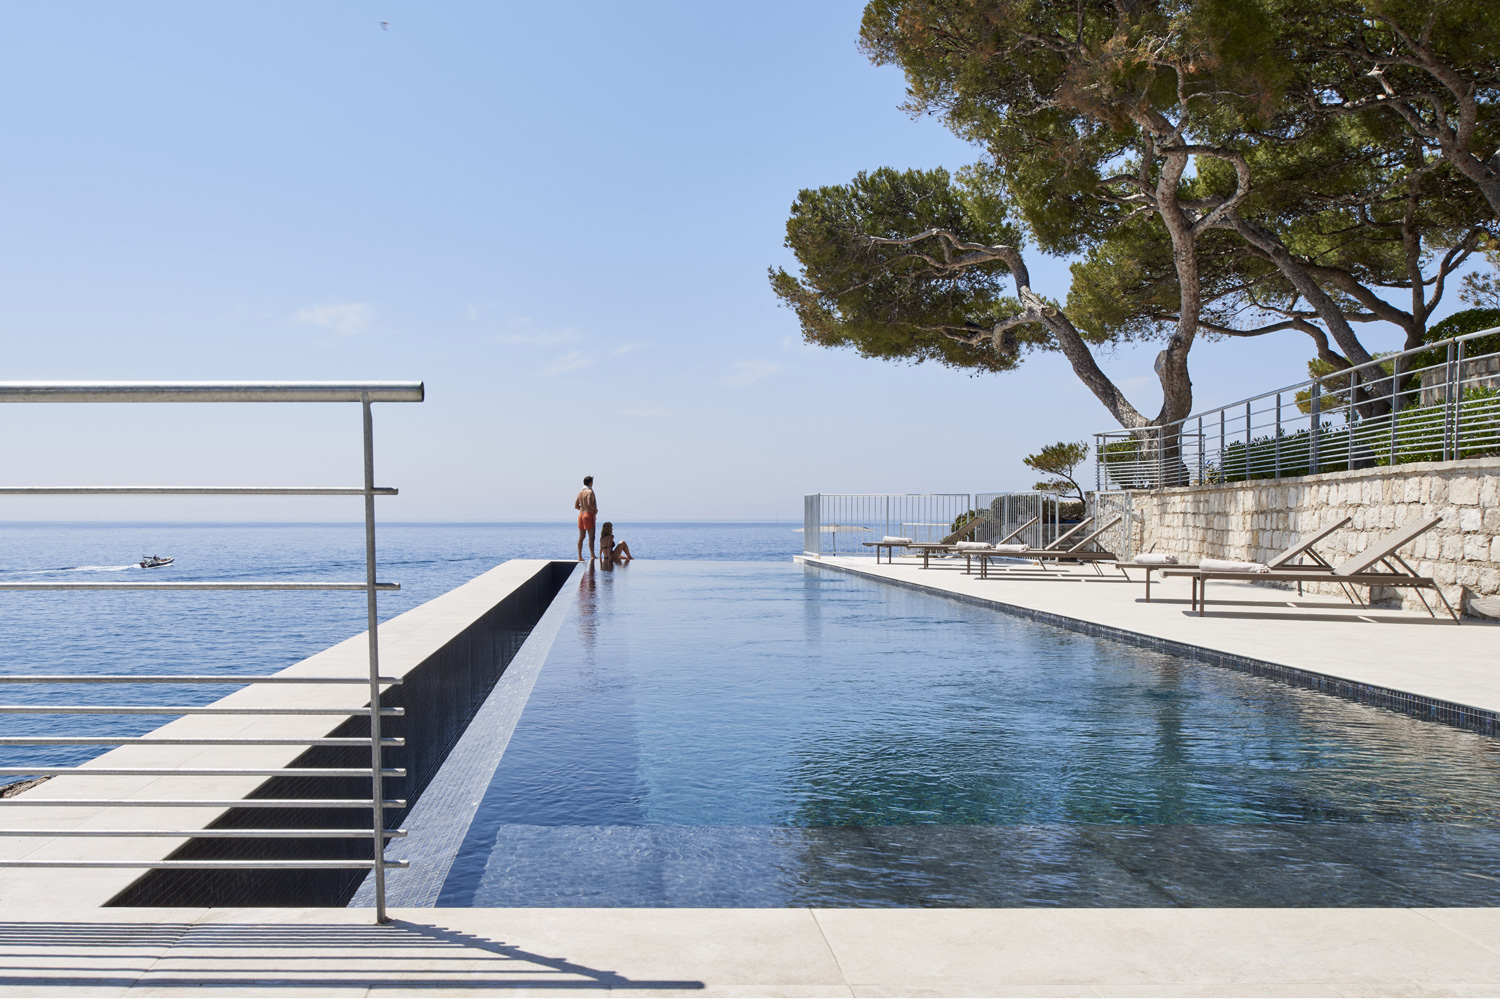 Piscines-Hotels-LES-ROCHES-BLANCHES-Cassis-©-D-Delmas